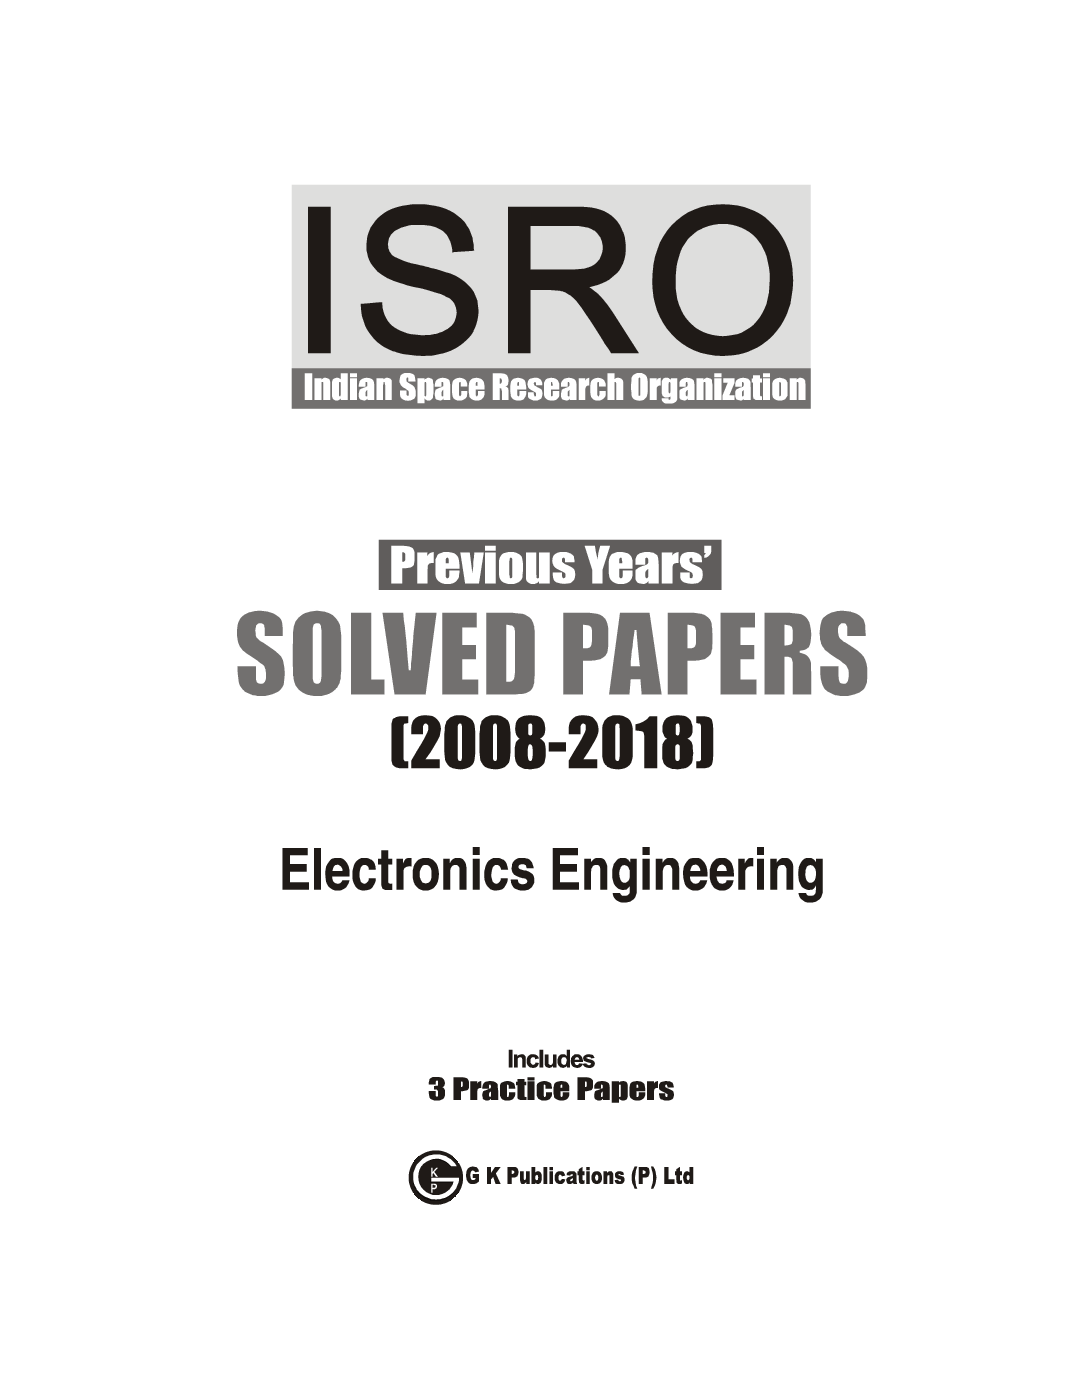 ISRO Electronics Engineering - Previous Years Solved Papers (2008-2018) 2019 - Page 2